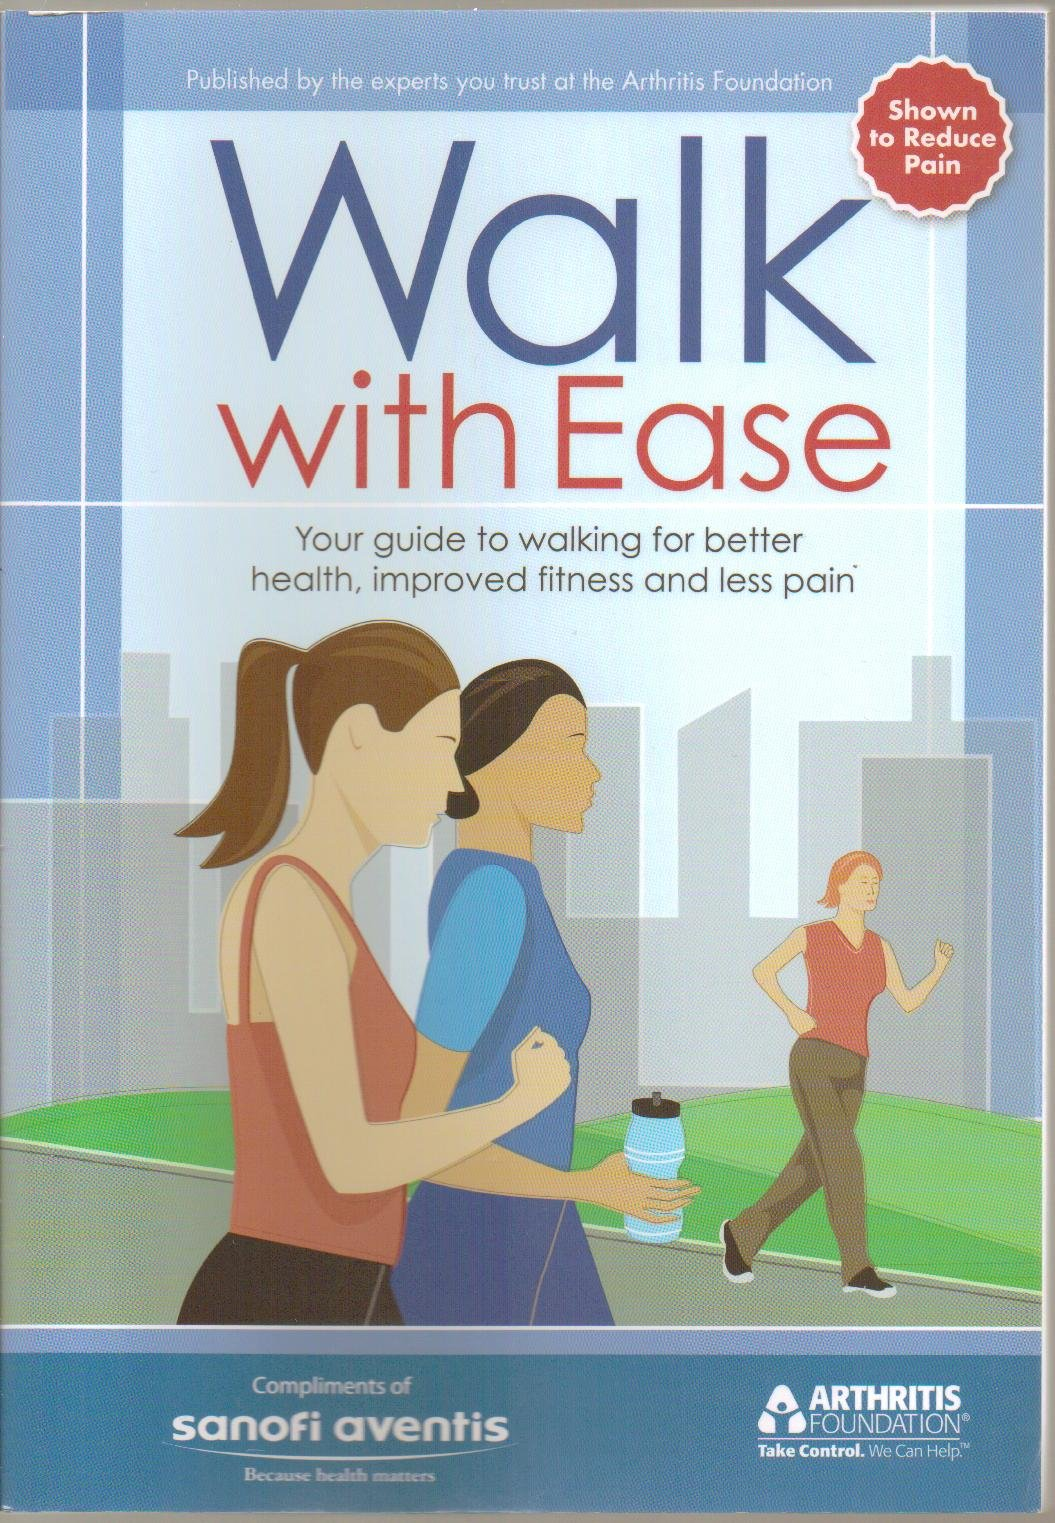 Walk with Ease, Your Guide to Walking for Better Health, Improved Fitness and Less Pain / Workbook, Personalized Guide with Questionaires - Paperback - First Edition, 6th Printing 2010 (Shown to REDUCE PAIN) PDF